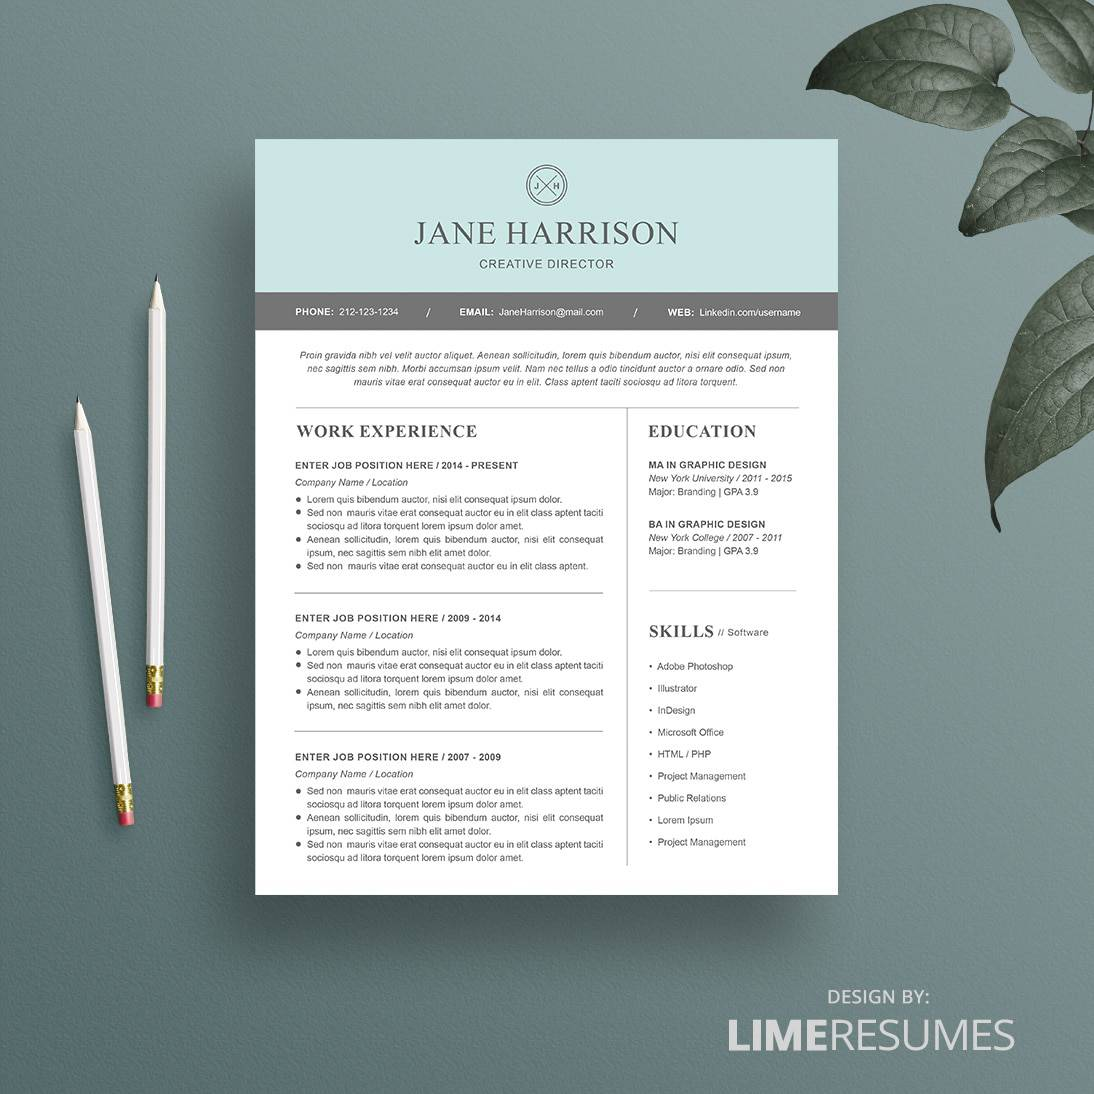 resume format template word cover letter templates resume format template word 2007 microsoft office word 2007 resume templates modern resume template 2 page